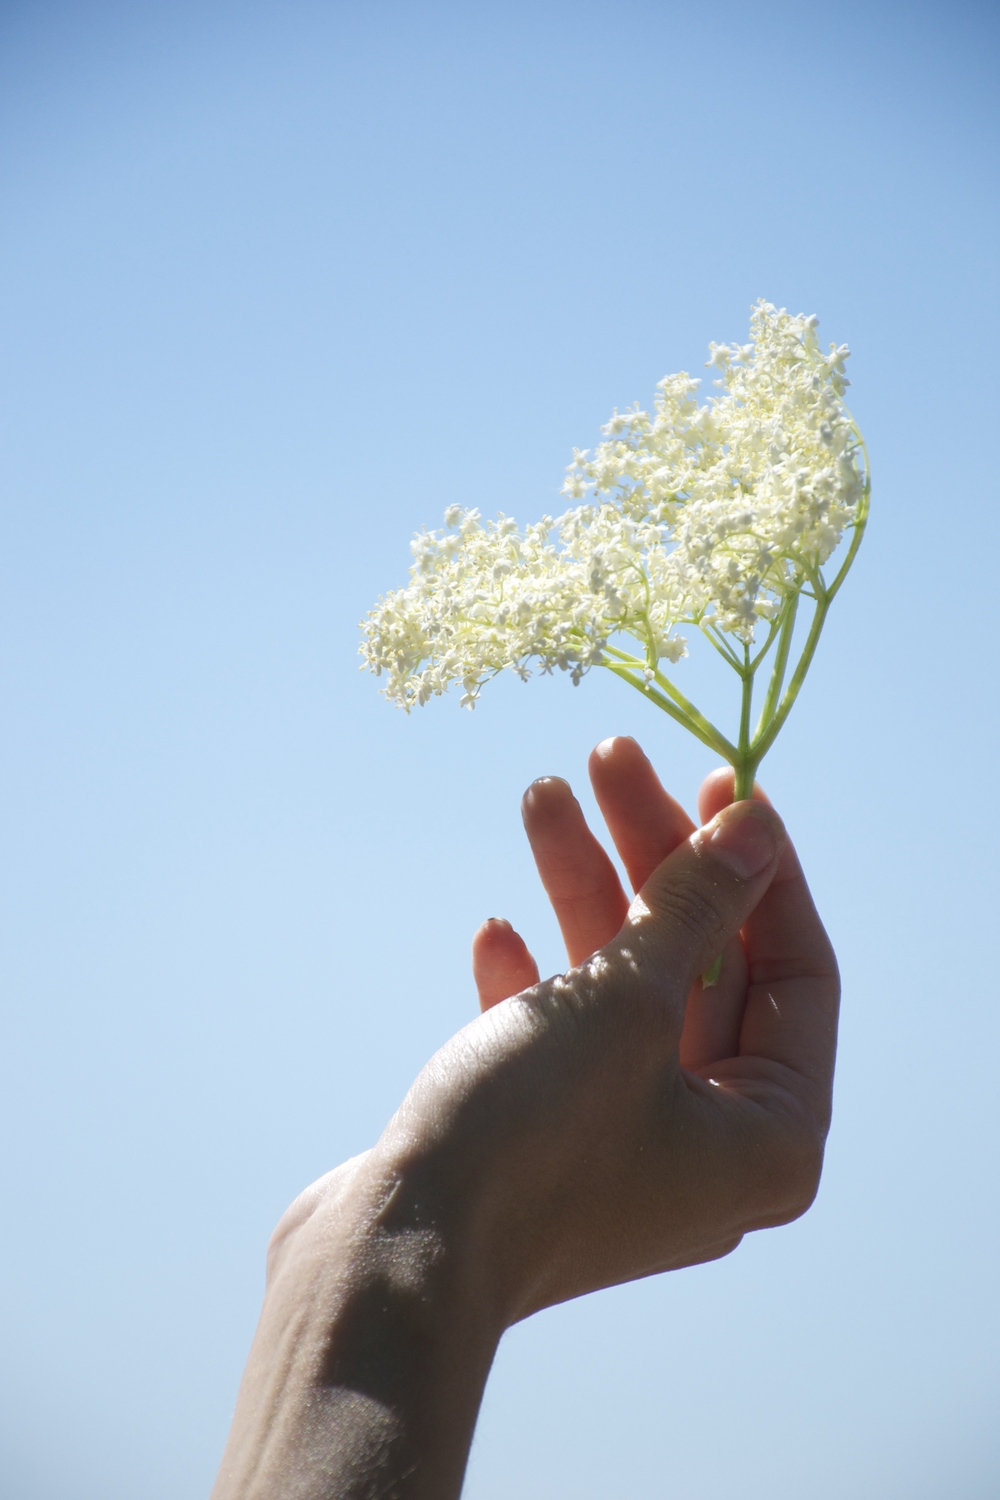 A hand holds a fresh, creamy white elderflower head against the sky